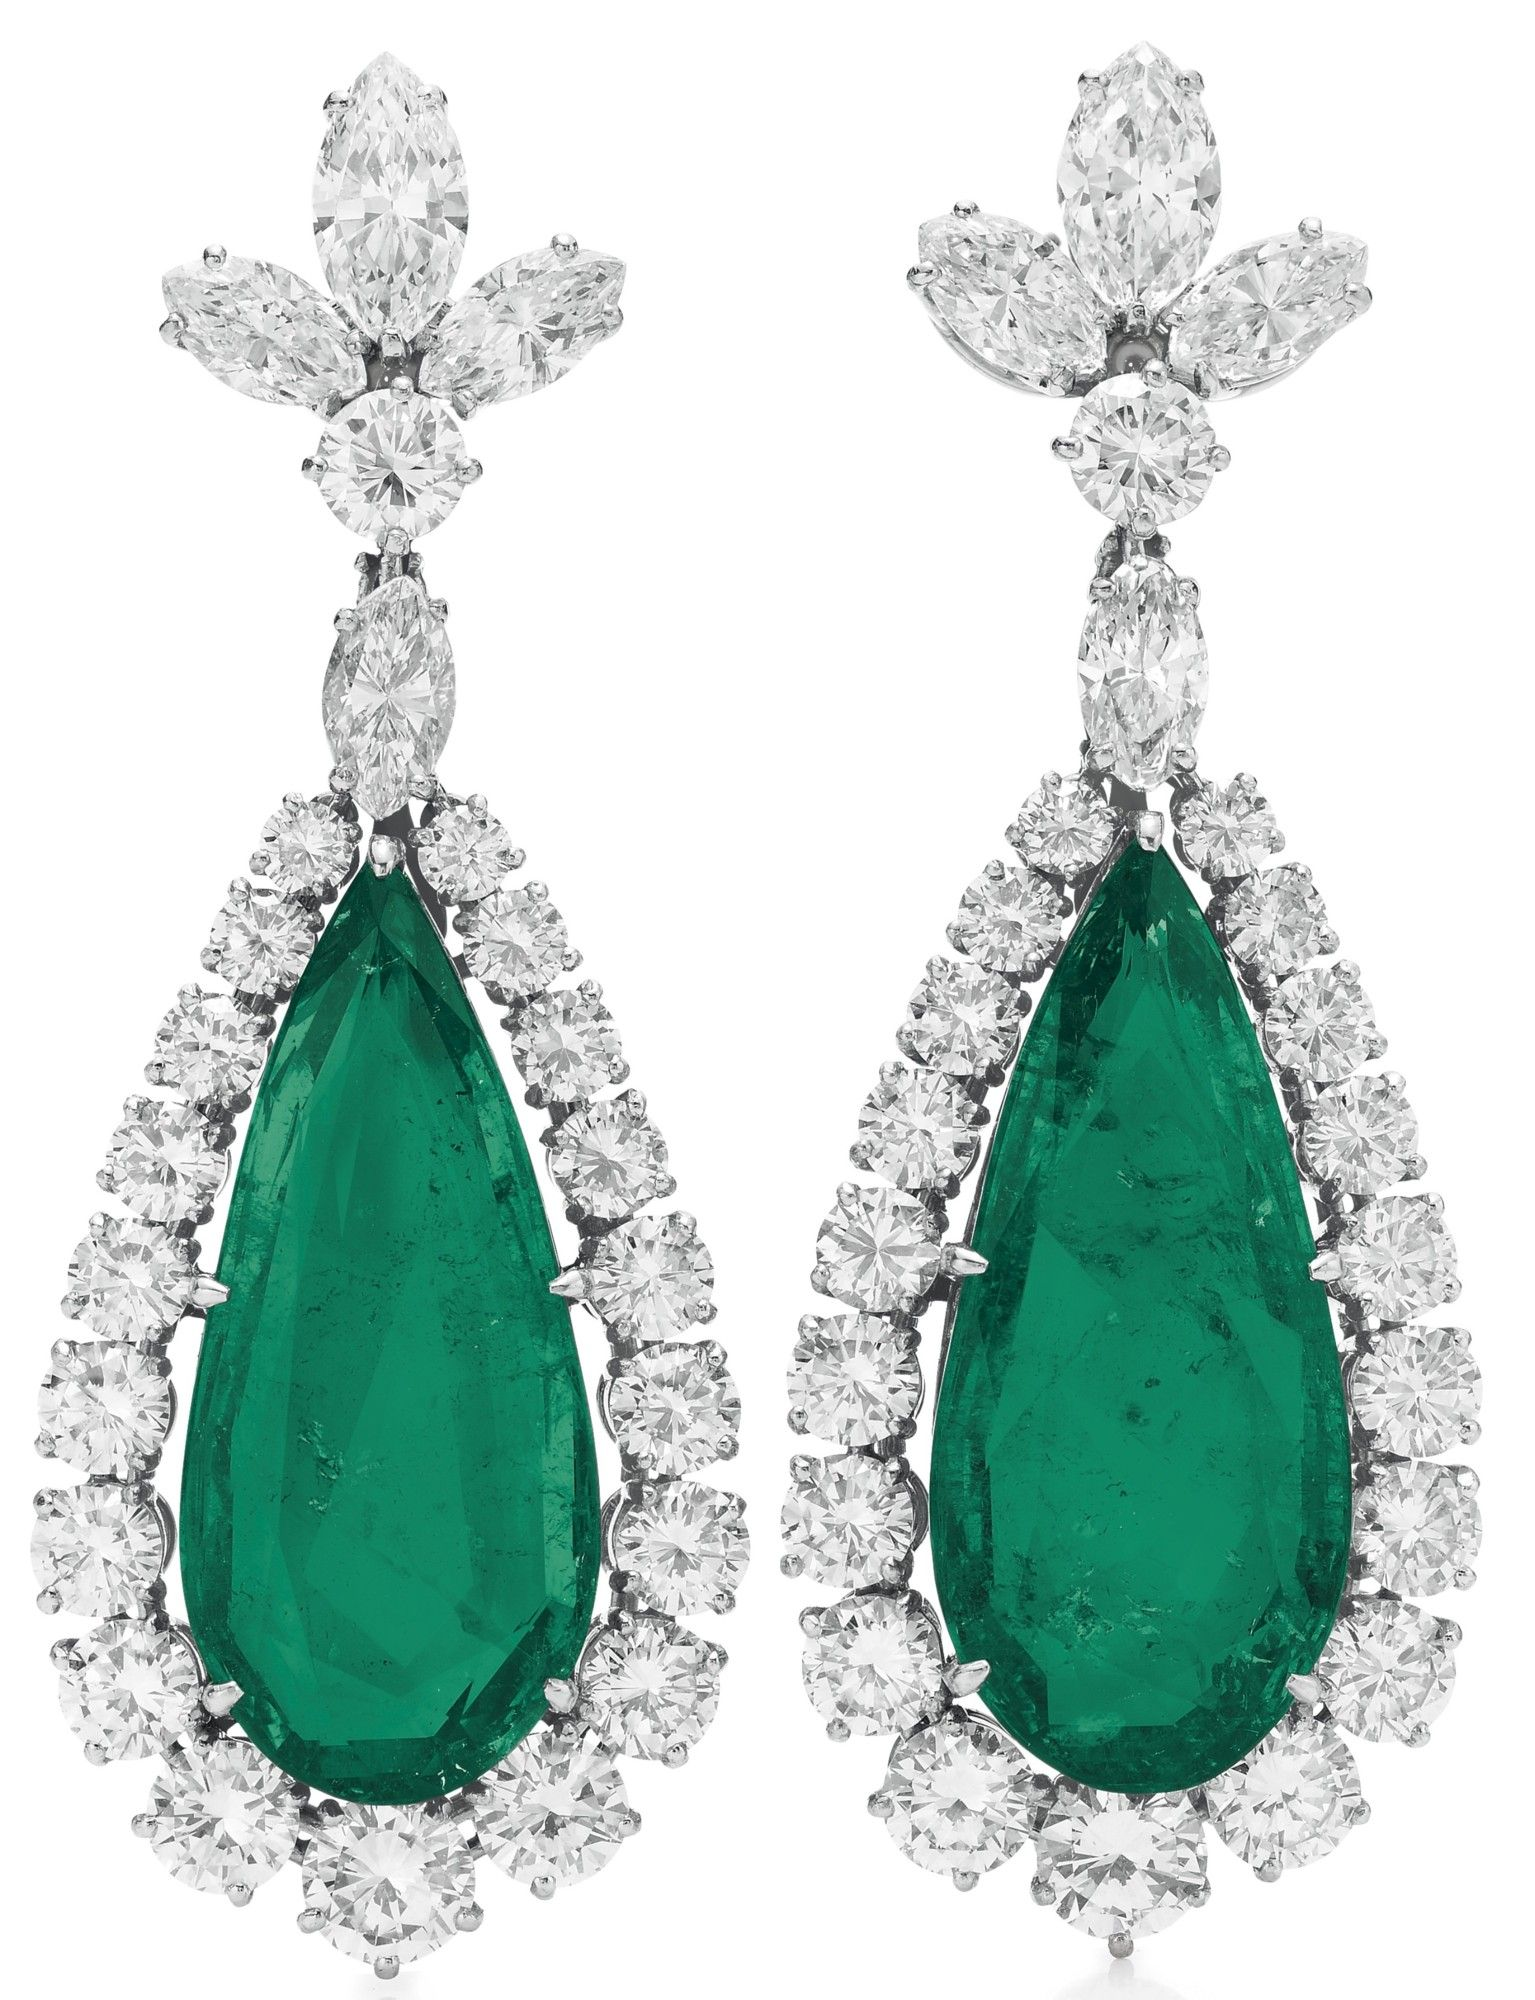 A Pair Emerald Diamond Ear Pendants By Bvlgari Green with